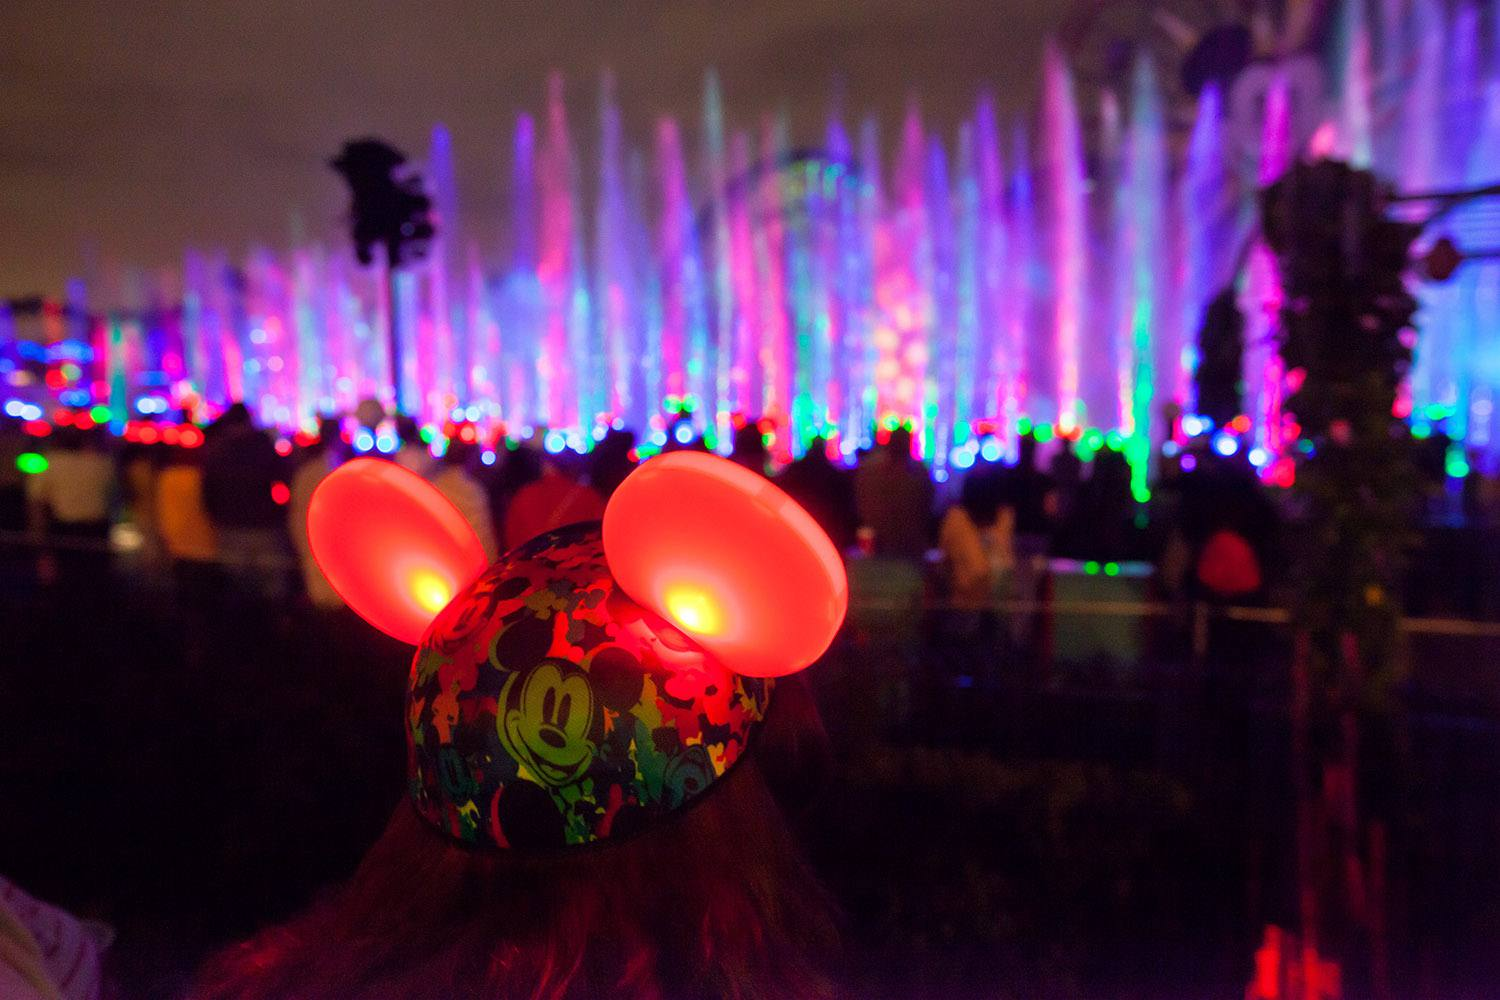 a woman's mouse ears glow as she watches World of Color